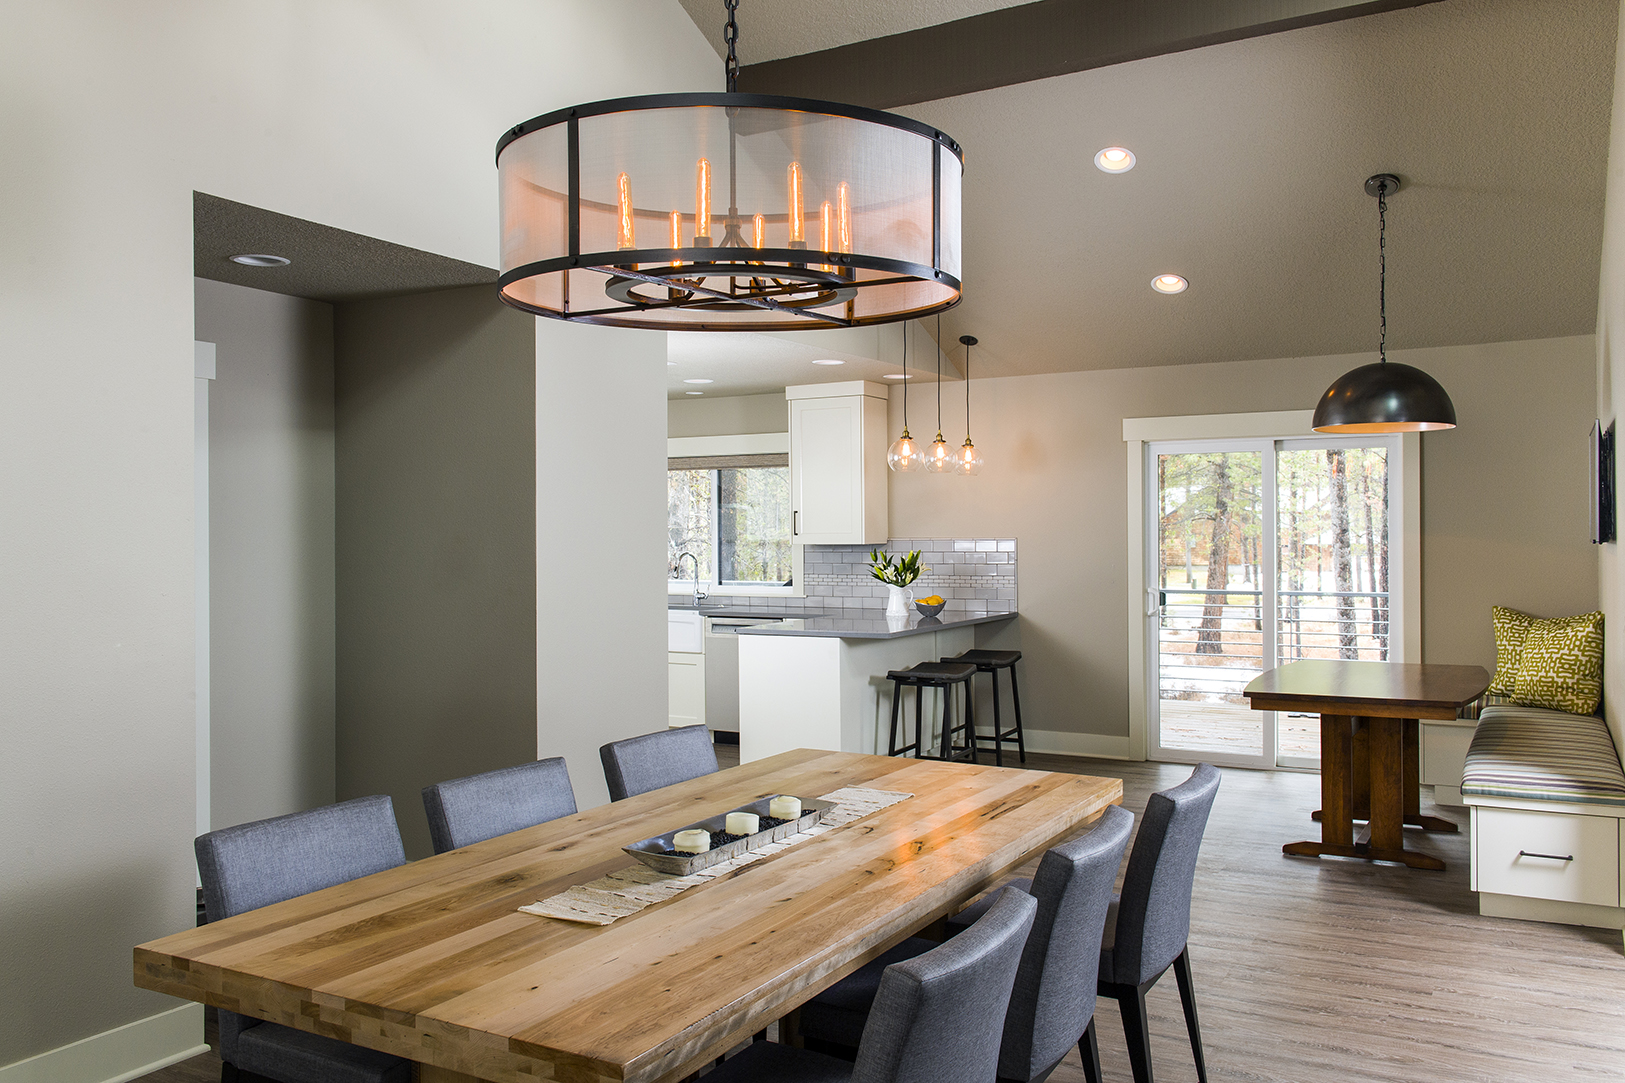 pgc-building-design-bend-oregon-loutit-remodelPGC-8109-1625px